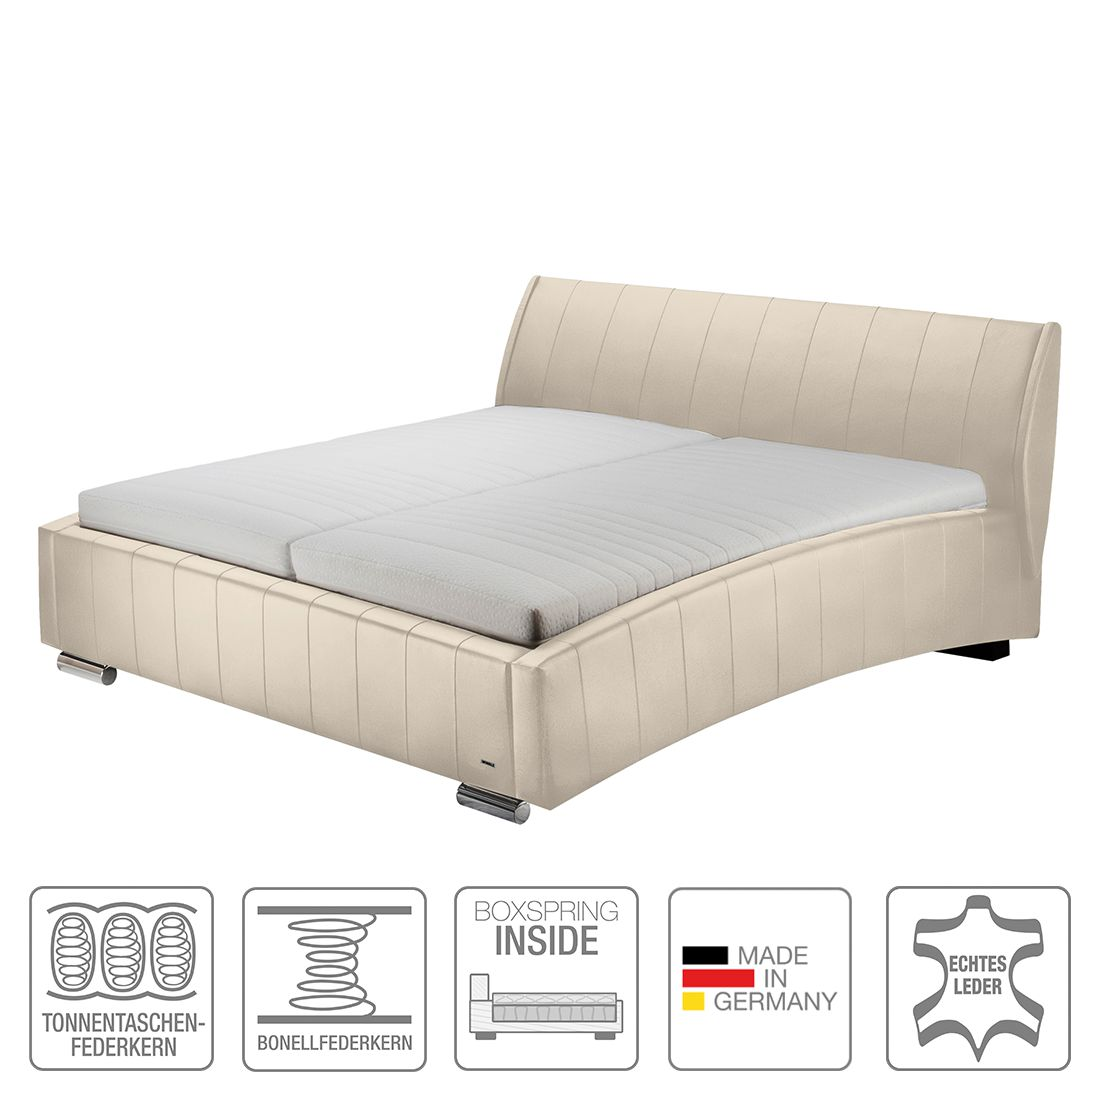 boxspring inside bett sarino echtleder 180 x 200cm. Black Bedroom Furniture Sets. Home Design Ideas